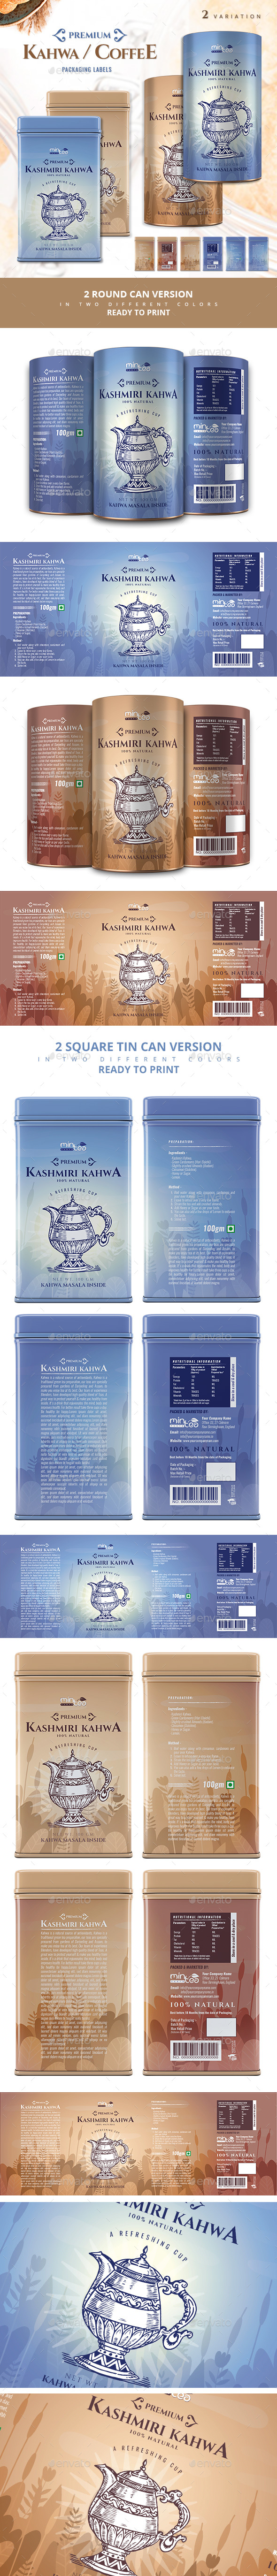 Kahwa / Coffee Packaging - Packaging Print Templates